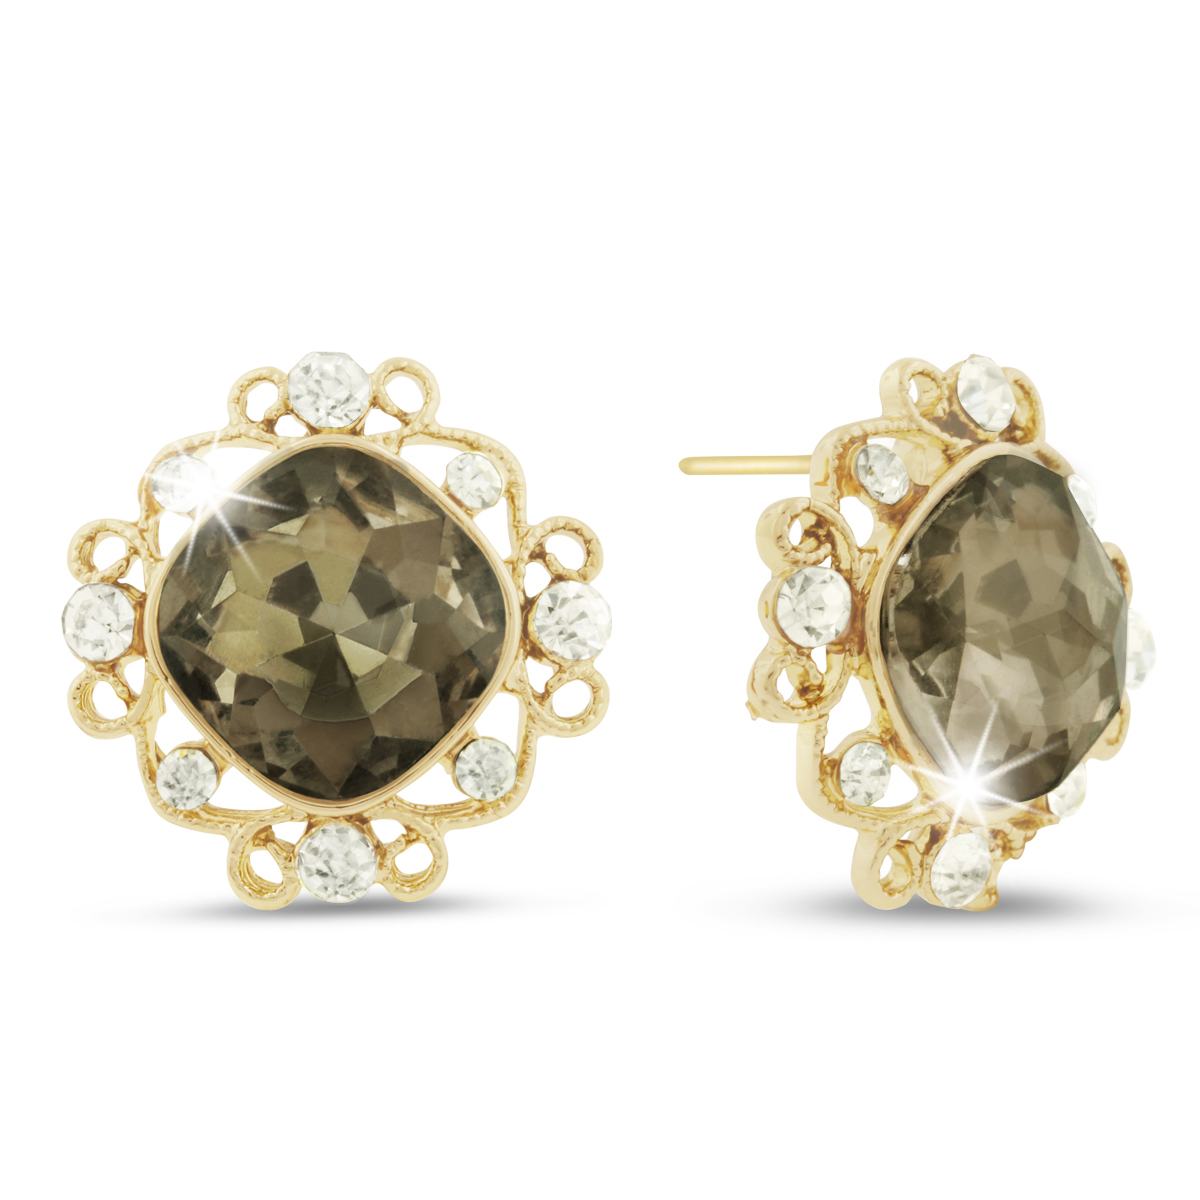 Champagne Colored Swarovski Elements Cushion Cut Stud Earrings, P